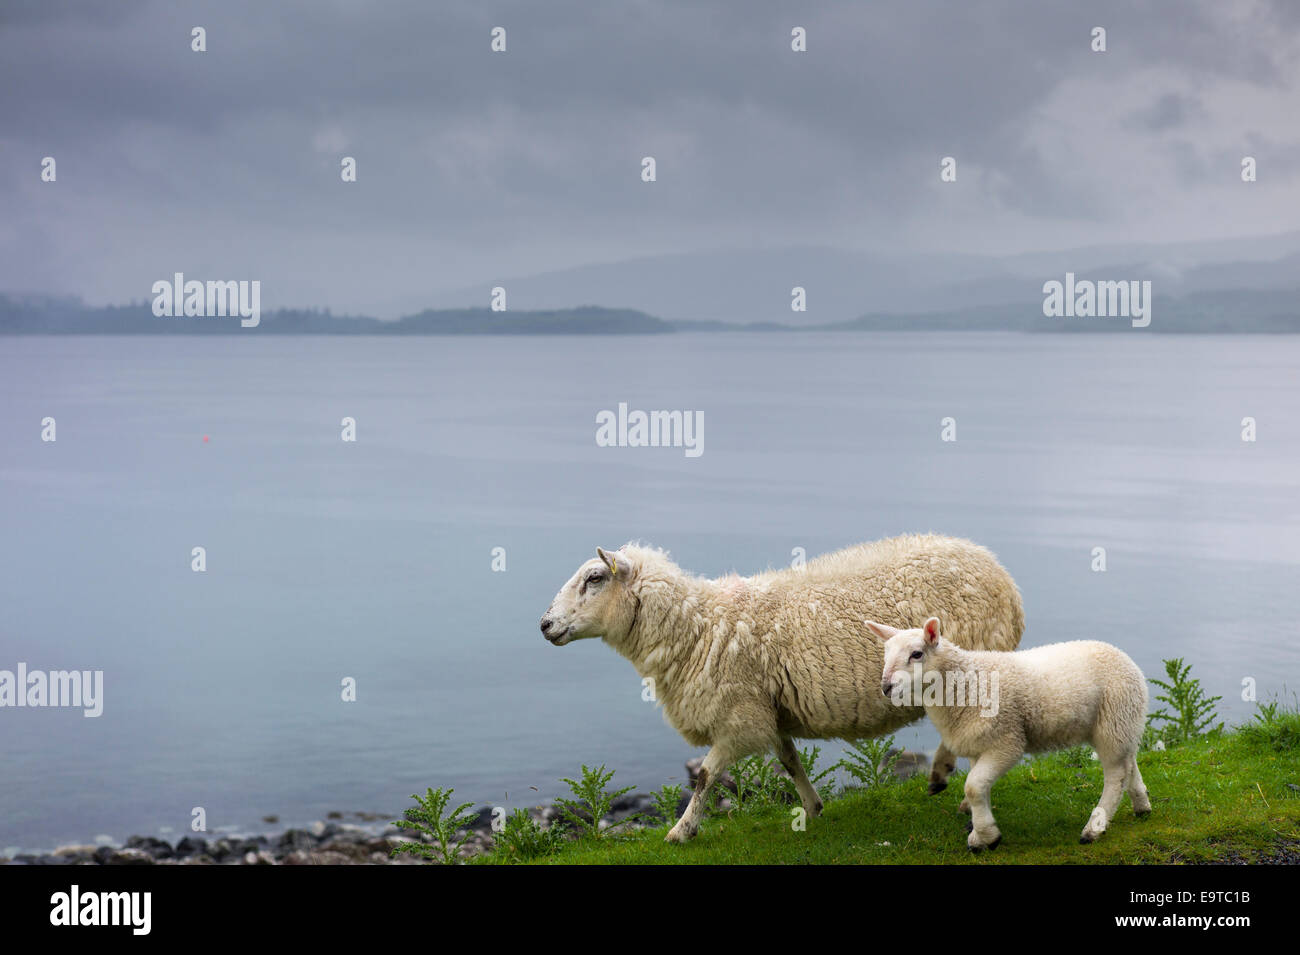 Ewe sheep with lamb, Ovis aries,  roaming freely by side of road and loch on Isle of Mull in the Highlands and Islands - Stock Image